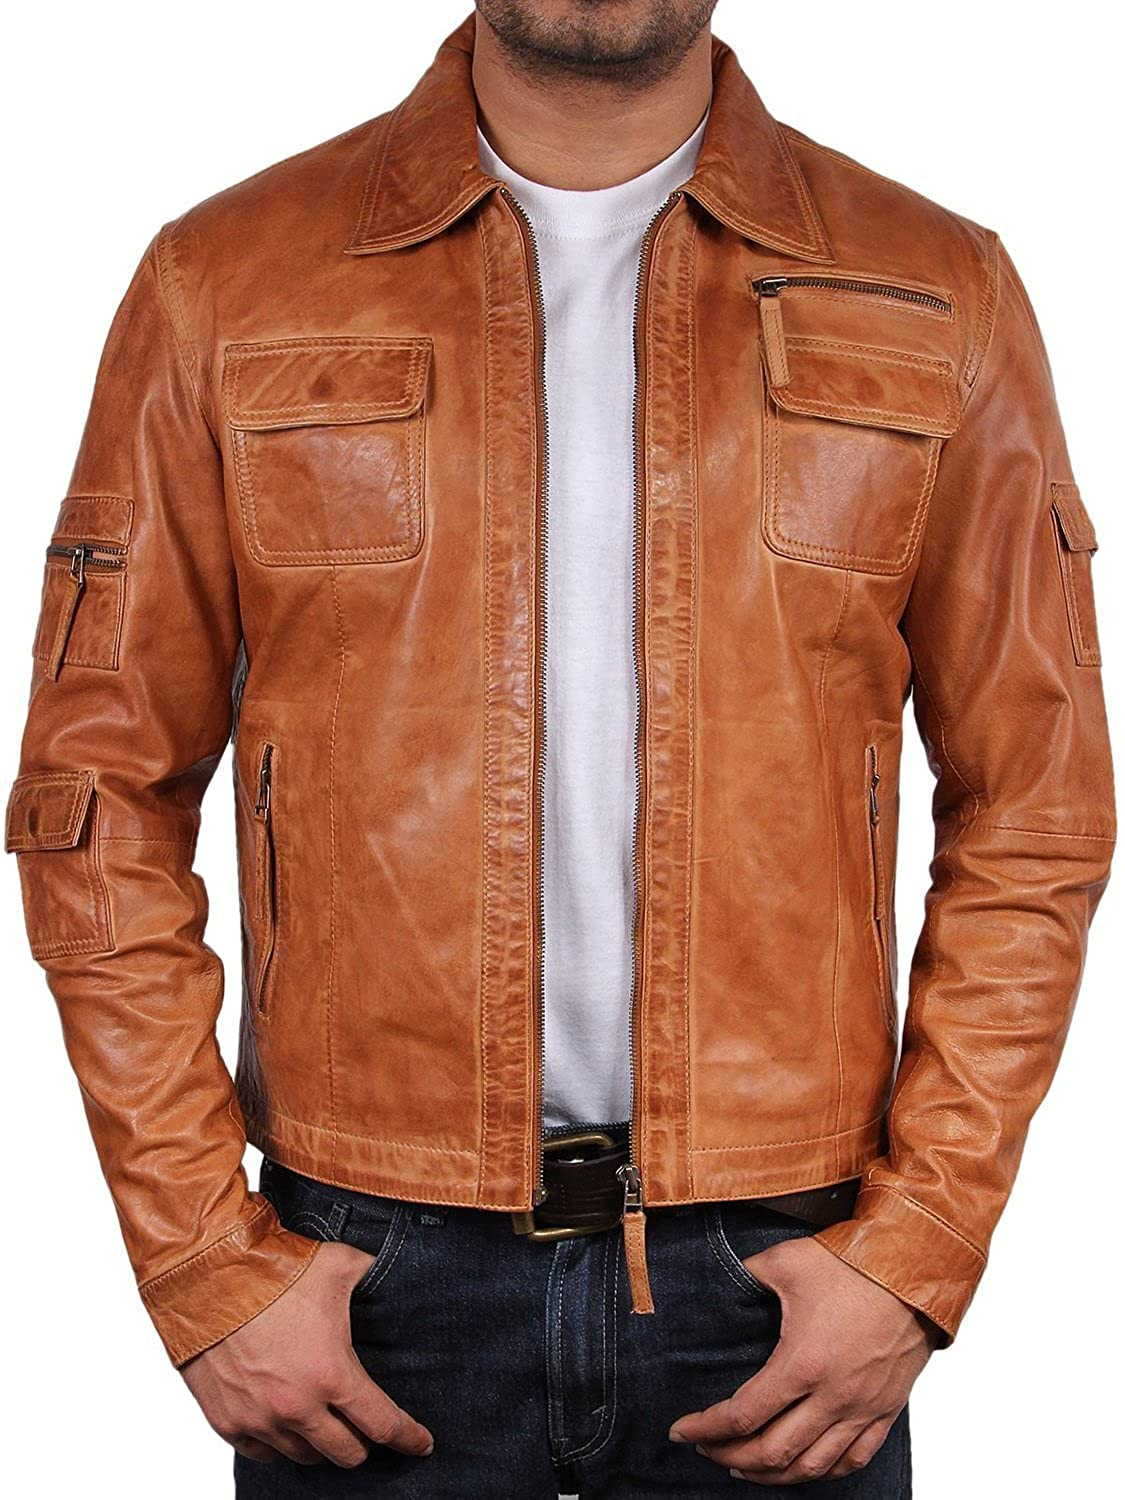 UK Vintage Men's Leather Biker Jacket Tan Real Leather Motor Biker ...